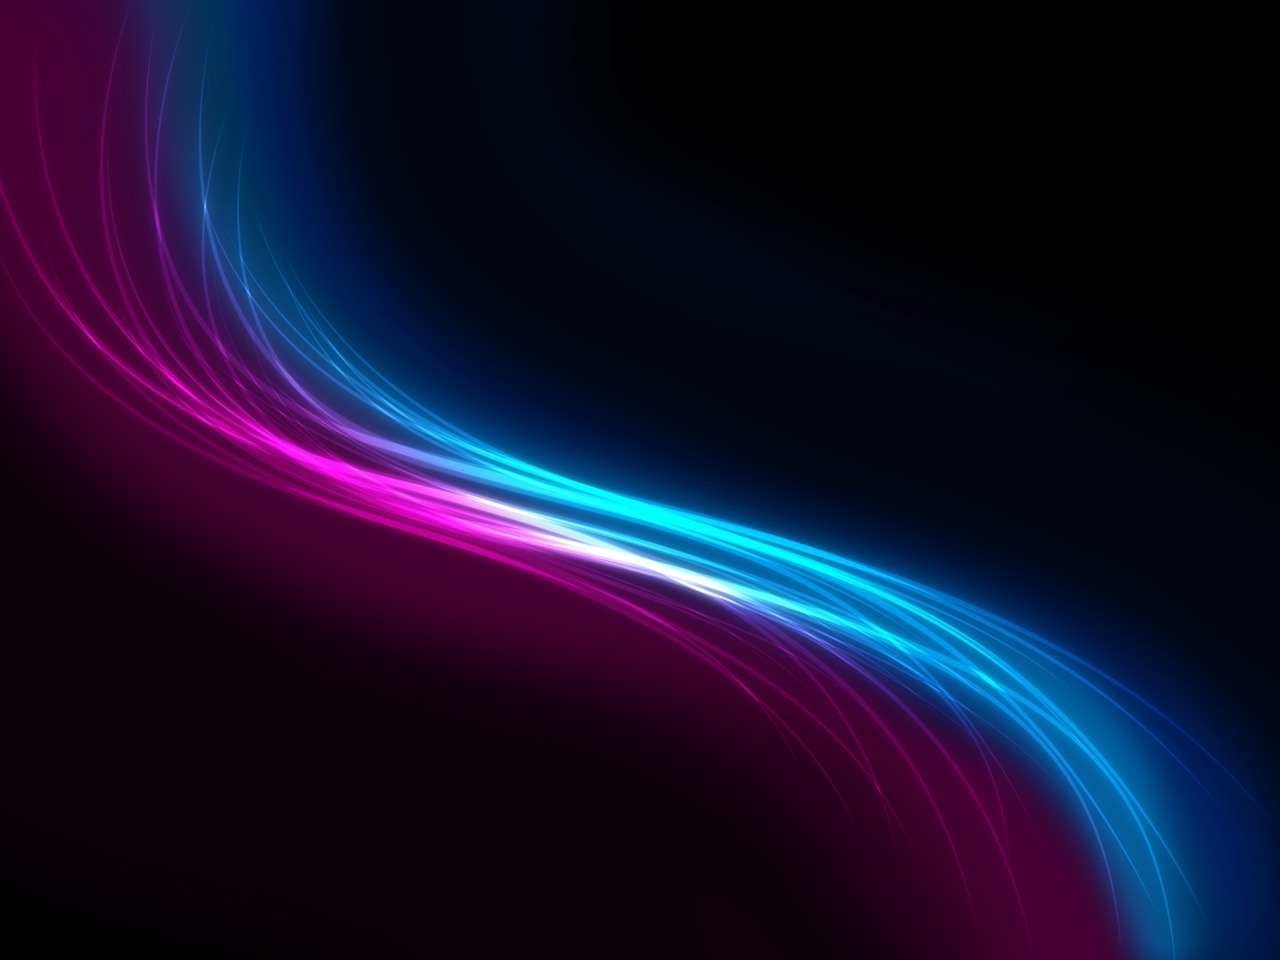 Purple blue curve-abstract design wallpaper background glare - 1280x960 wallpaper download